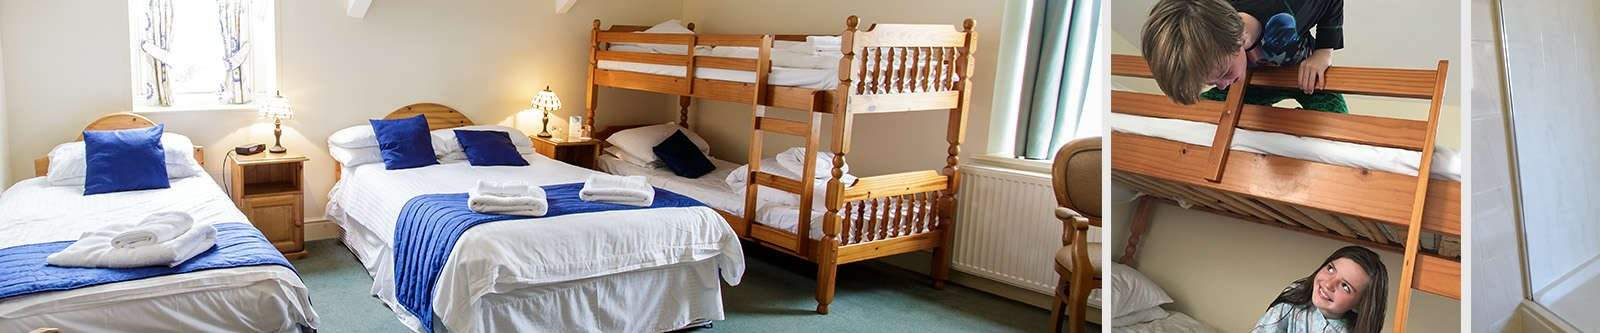 Family Rooms at Porth Veor Manor